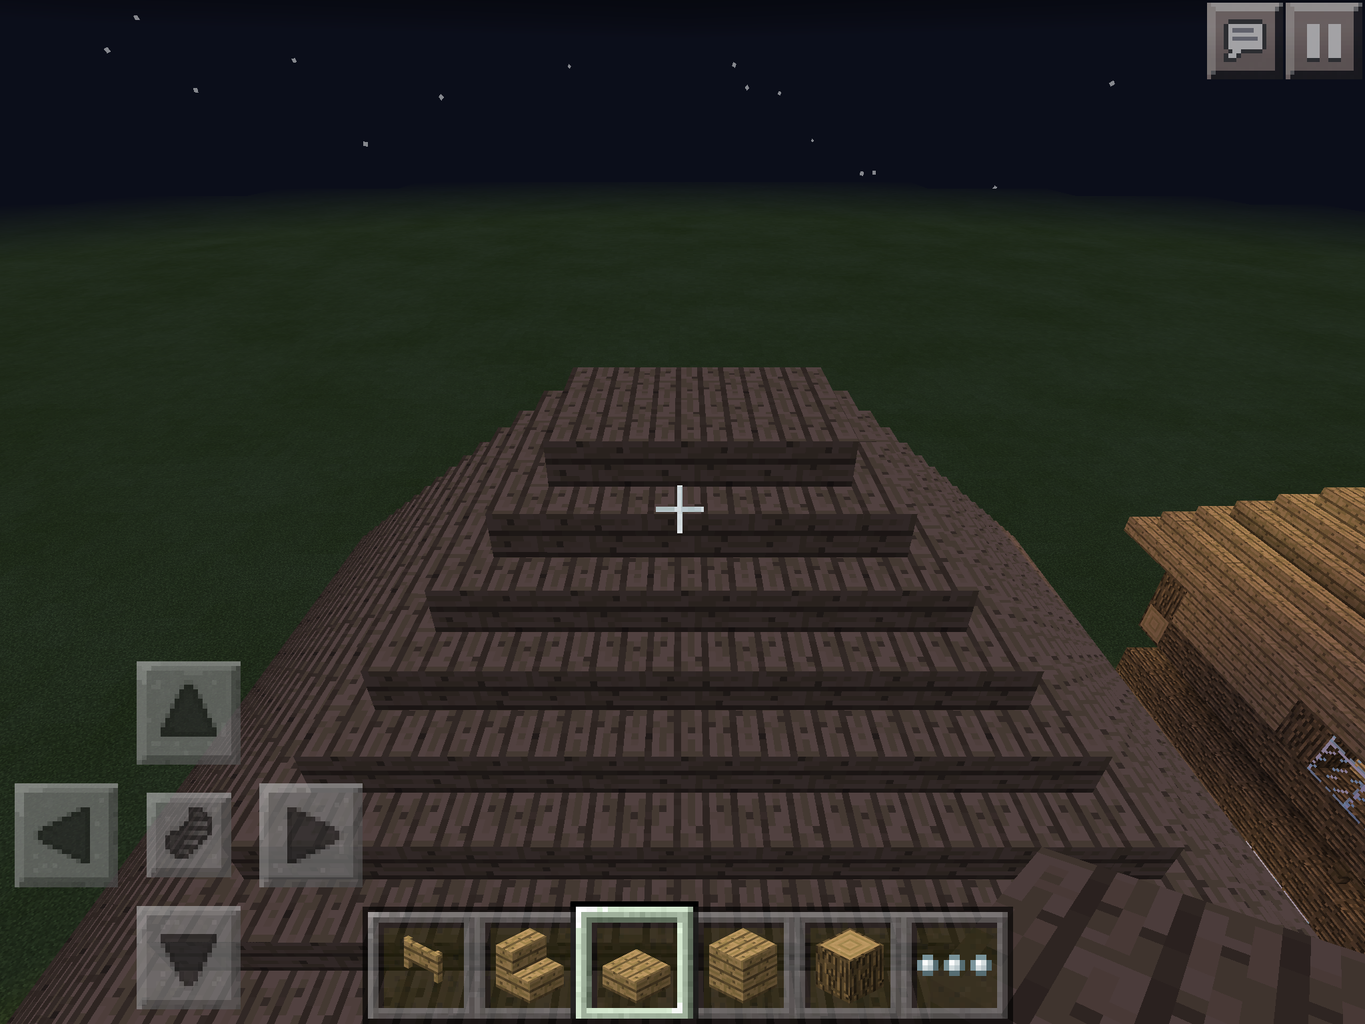 Almost Done!! the Roof